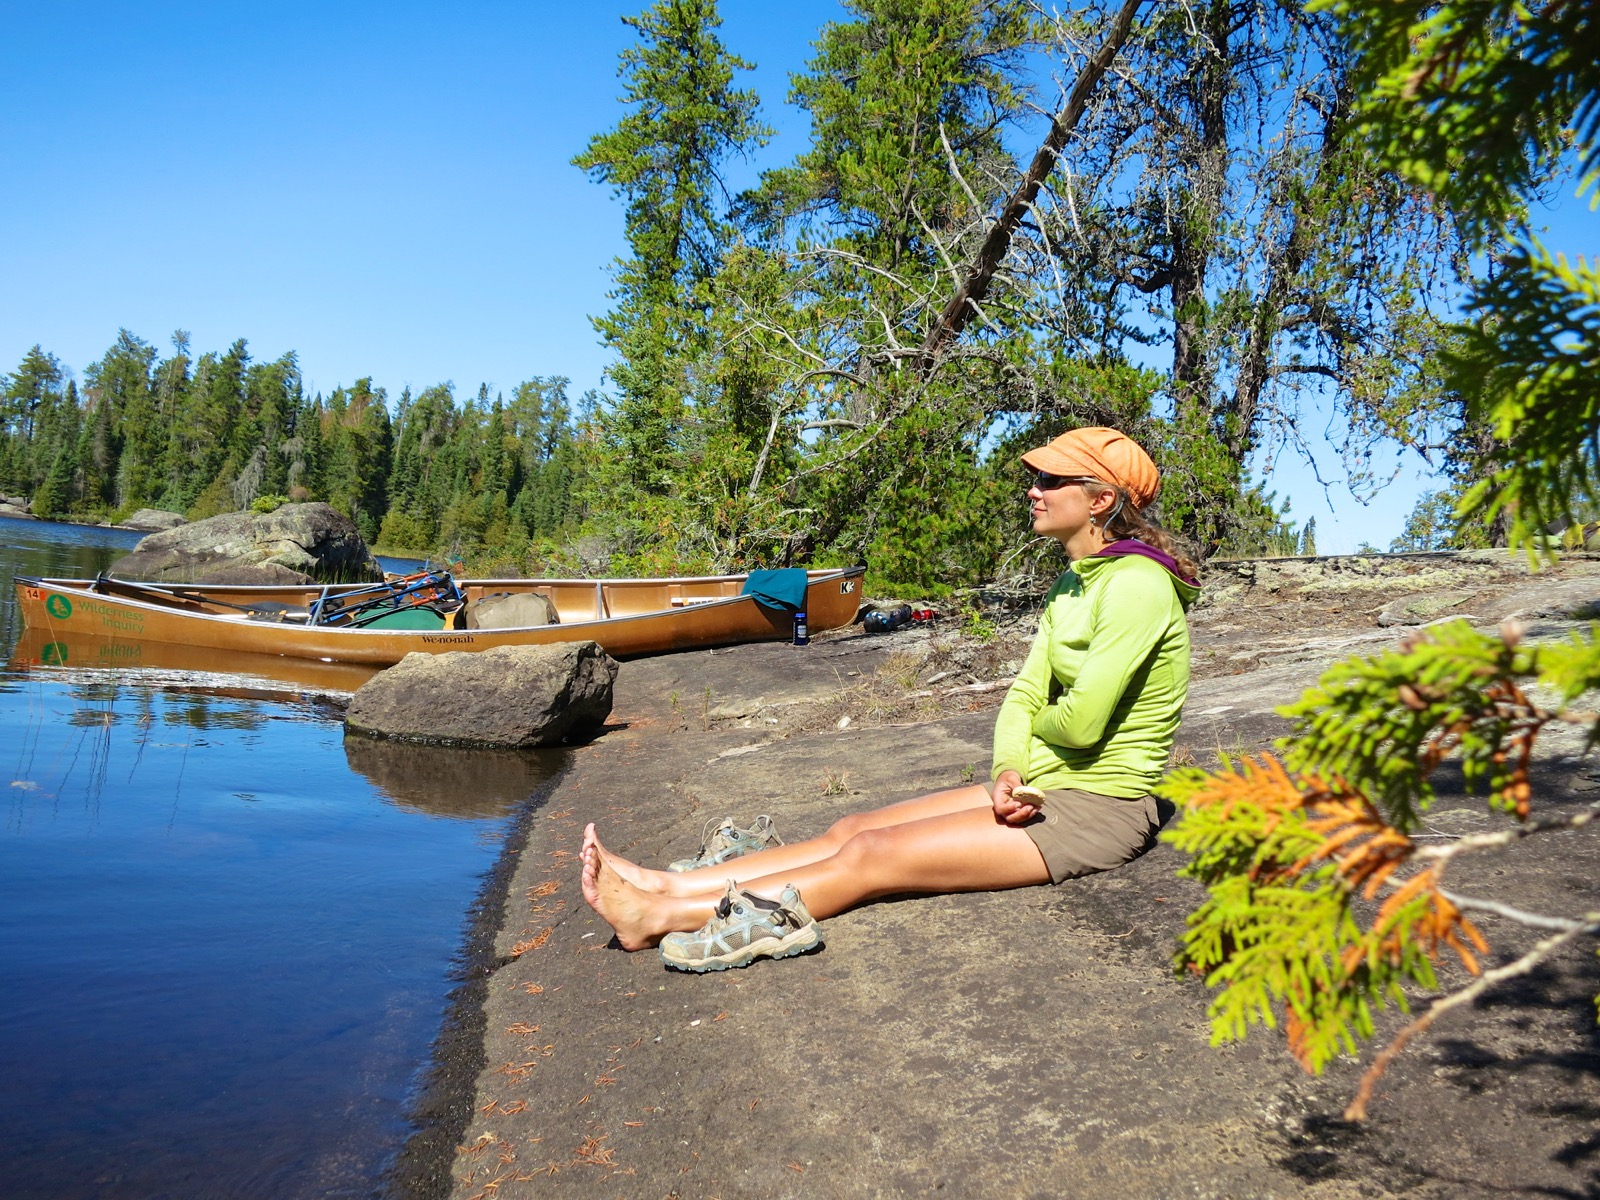 A woman sits on the shore after a day of canoeing